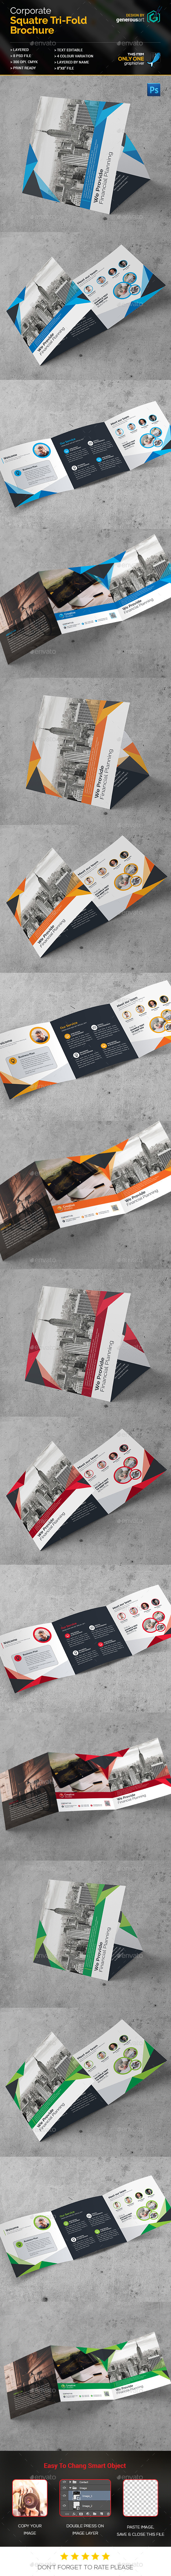 Pro_Square Tri-Fold Brochure - Corporate Brochures